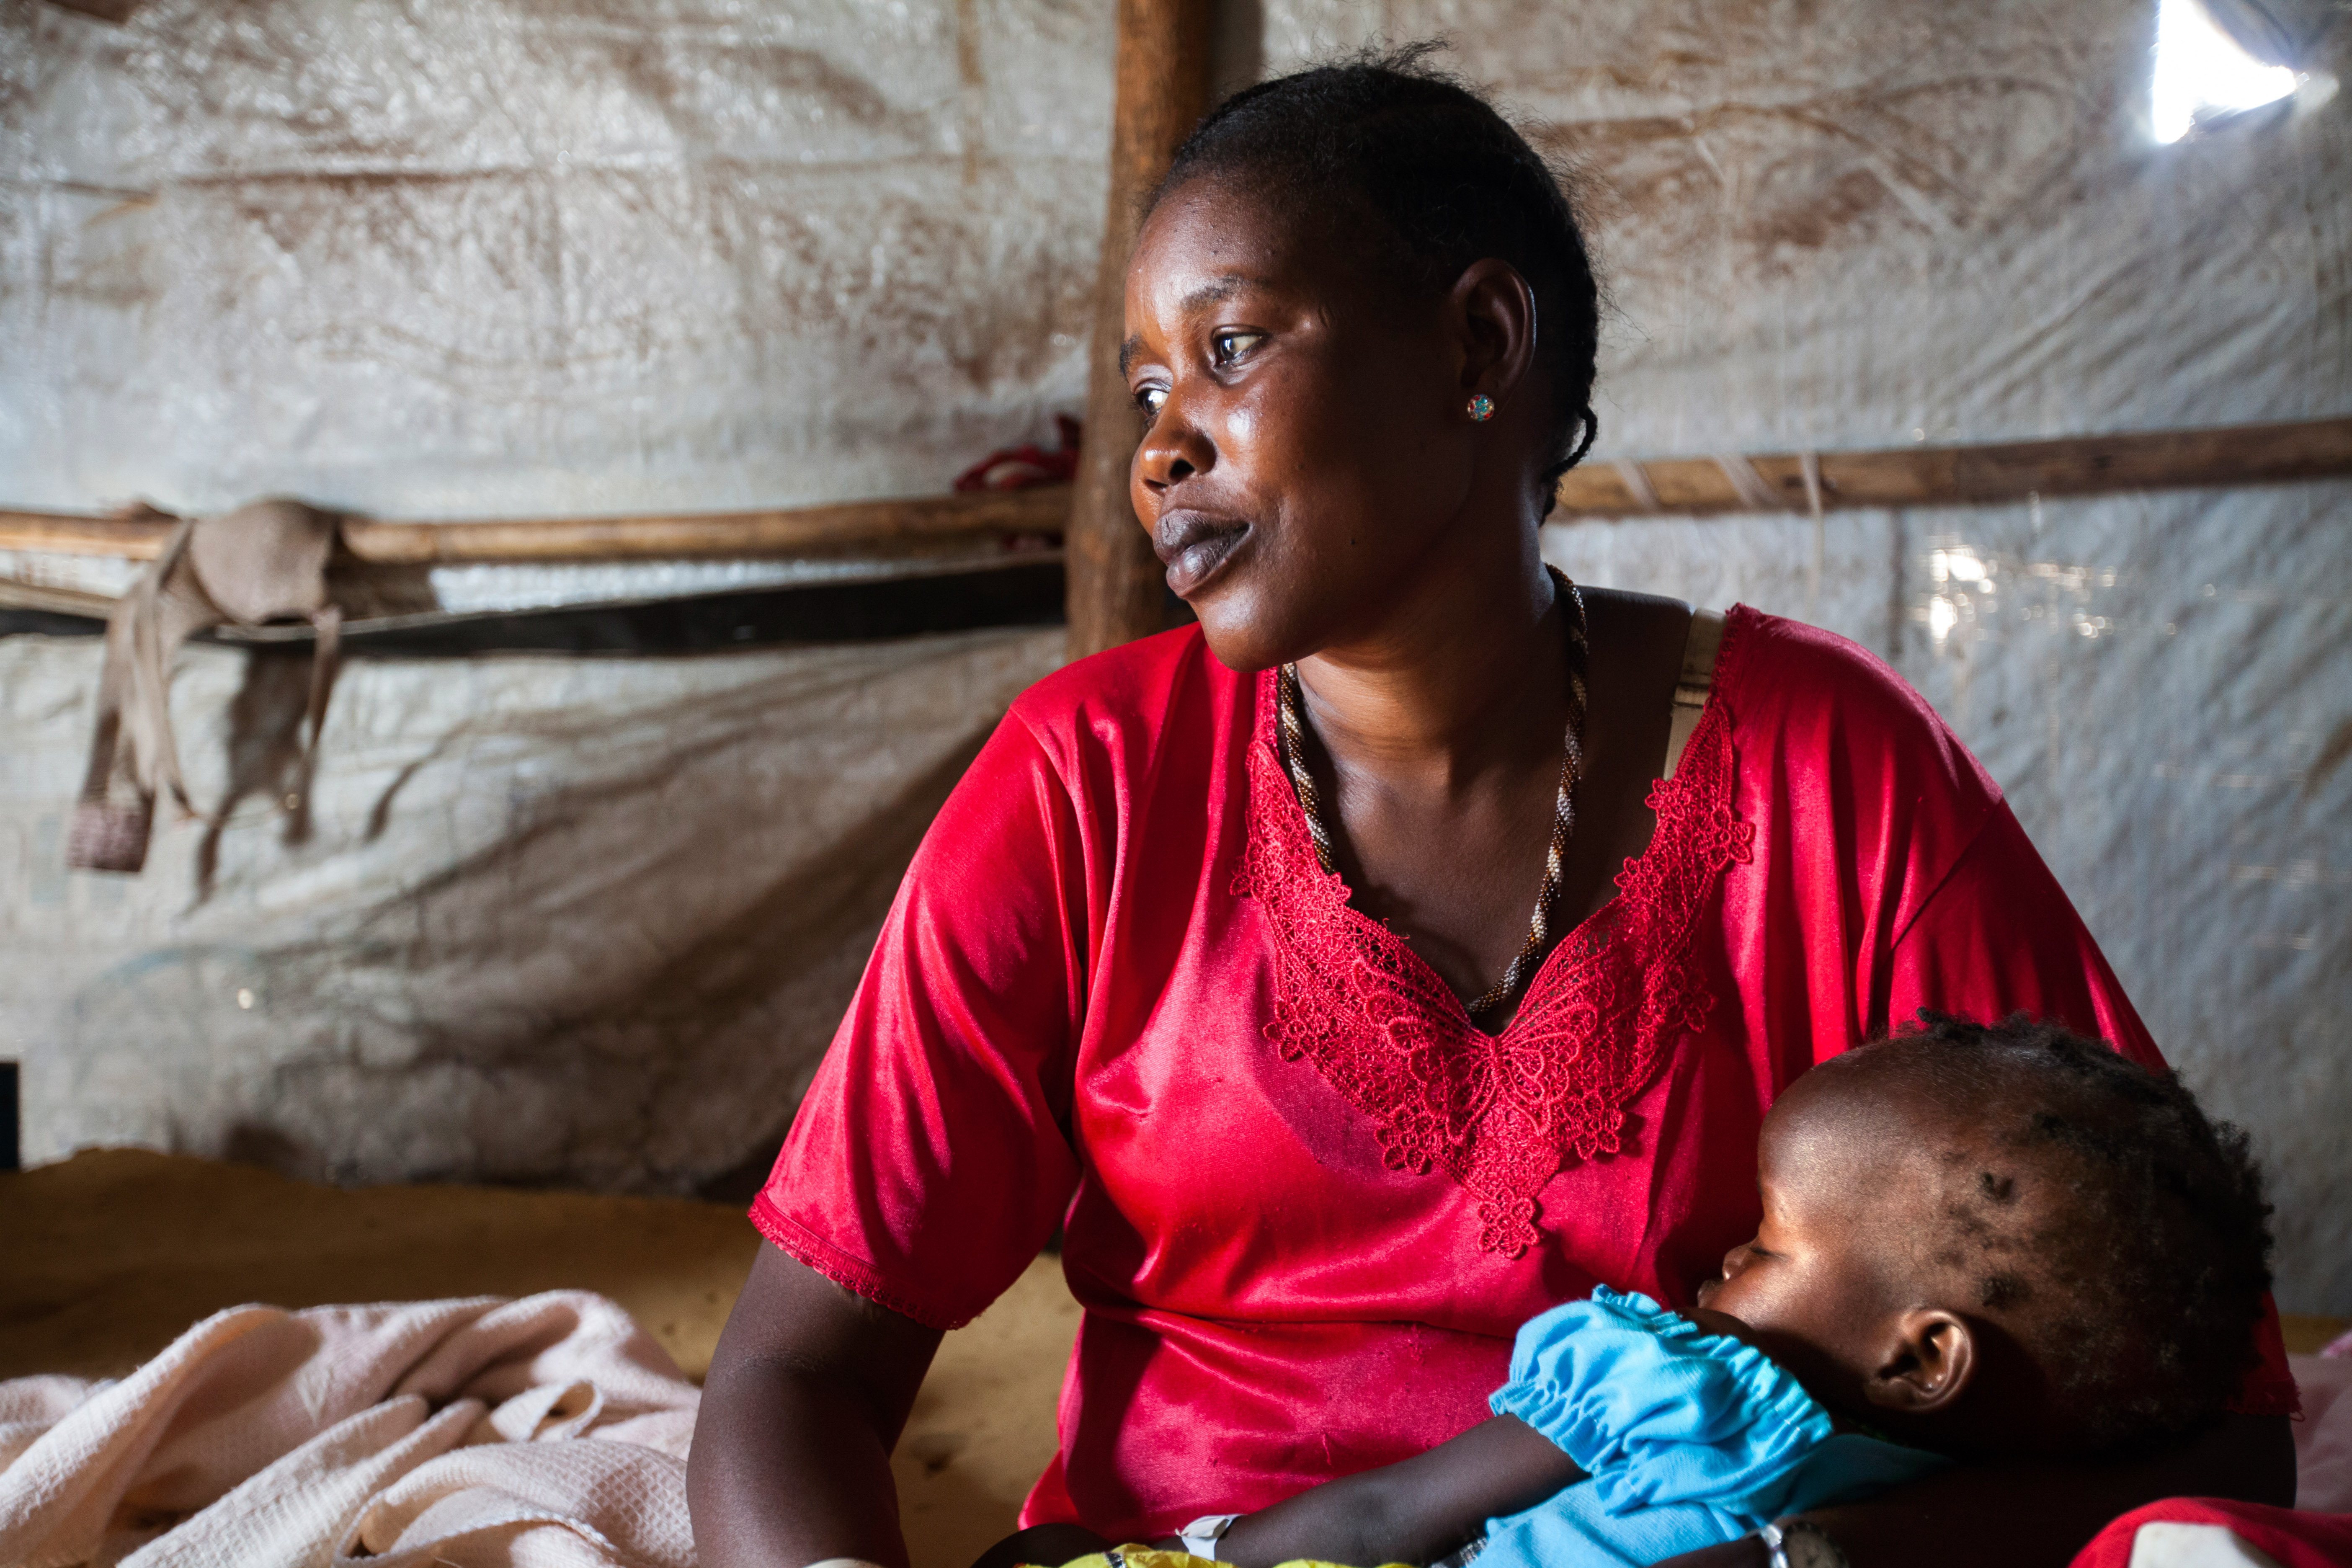 Displaced resident Elisa Both, from Upper Nile, holds her child Nyariek Gatkuoth (1.5 years) in a relatives' shelter at the UN Protection of Civilians site (PoC) in Juba, South Sudan. Source: © UNICEF / Gonzalez Farran